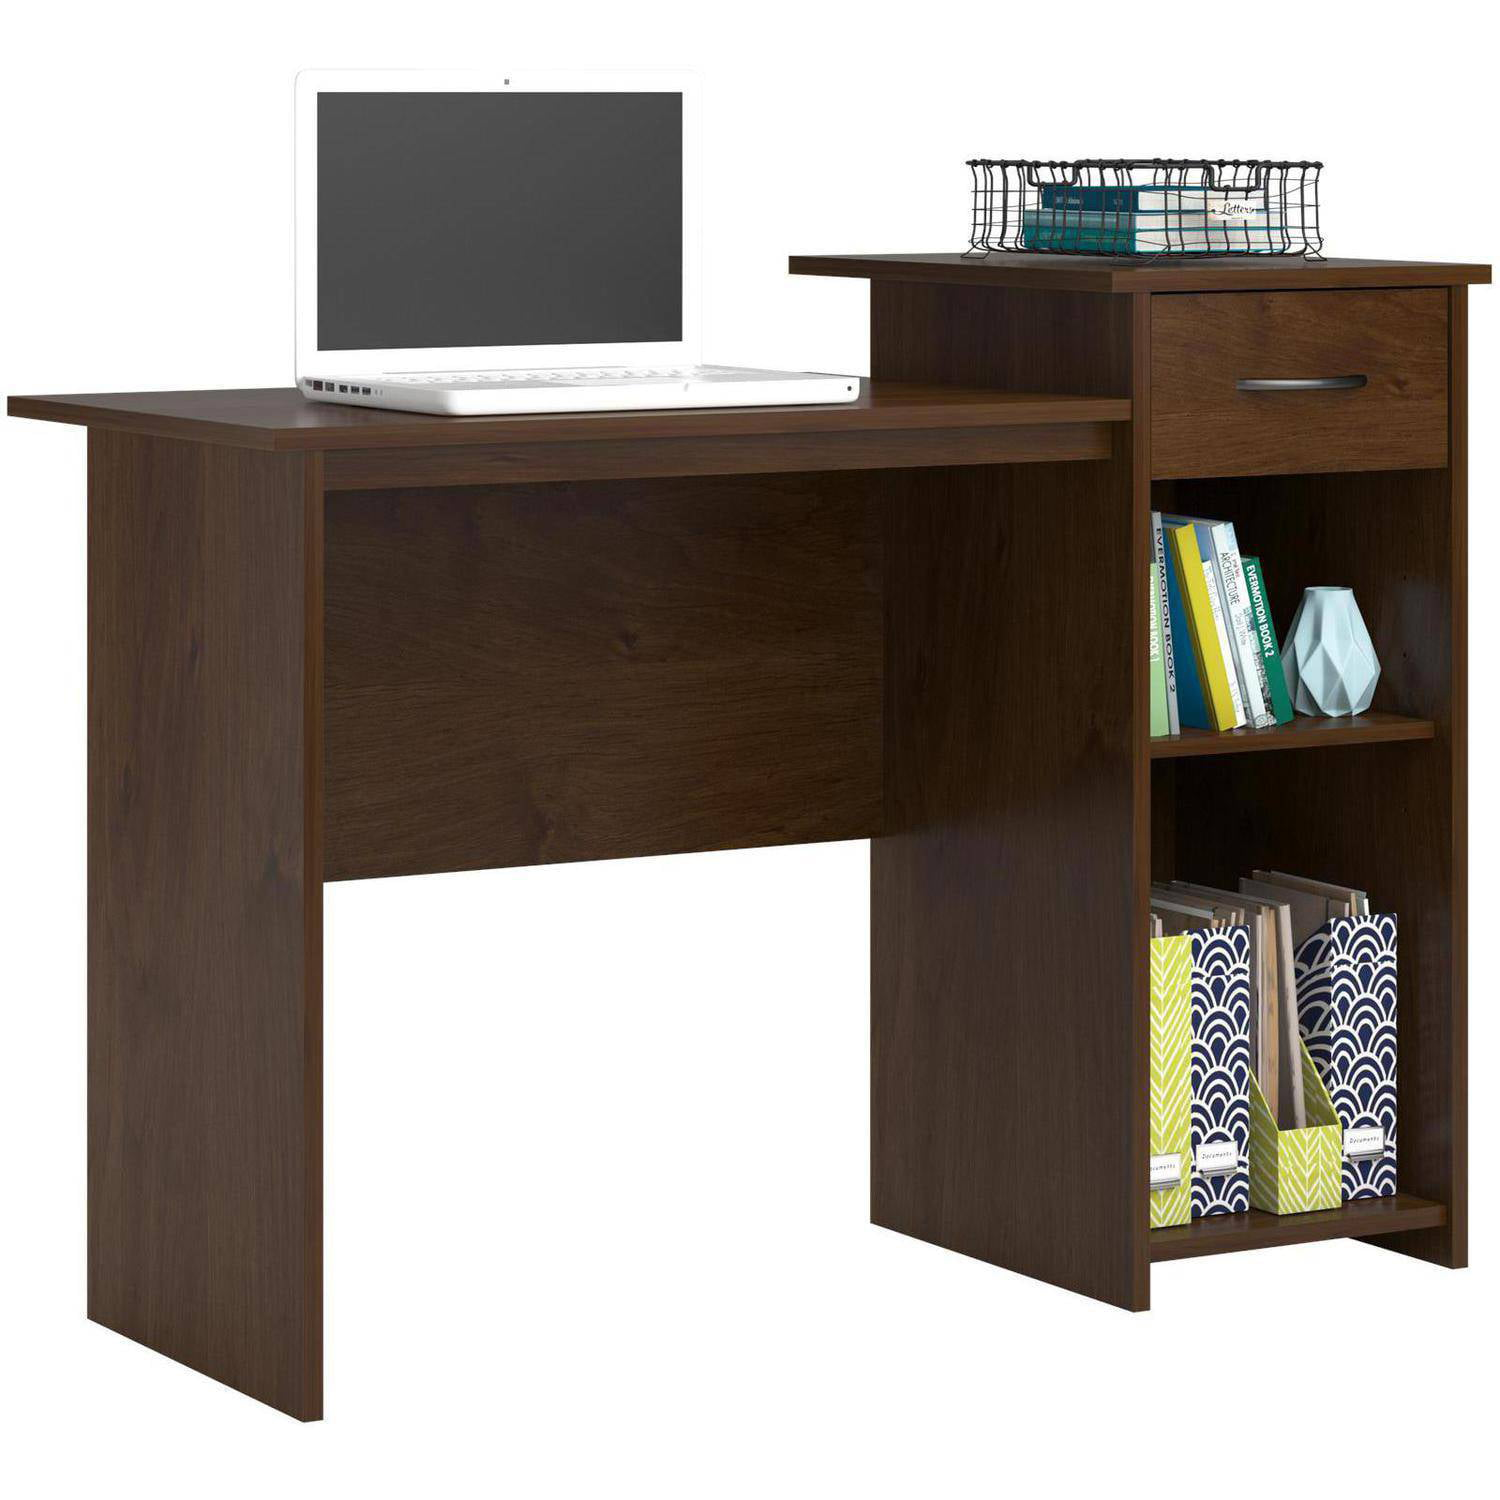 Small Space Furniture - Walmart.com